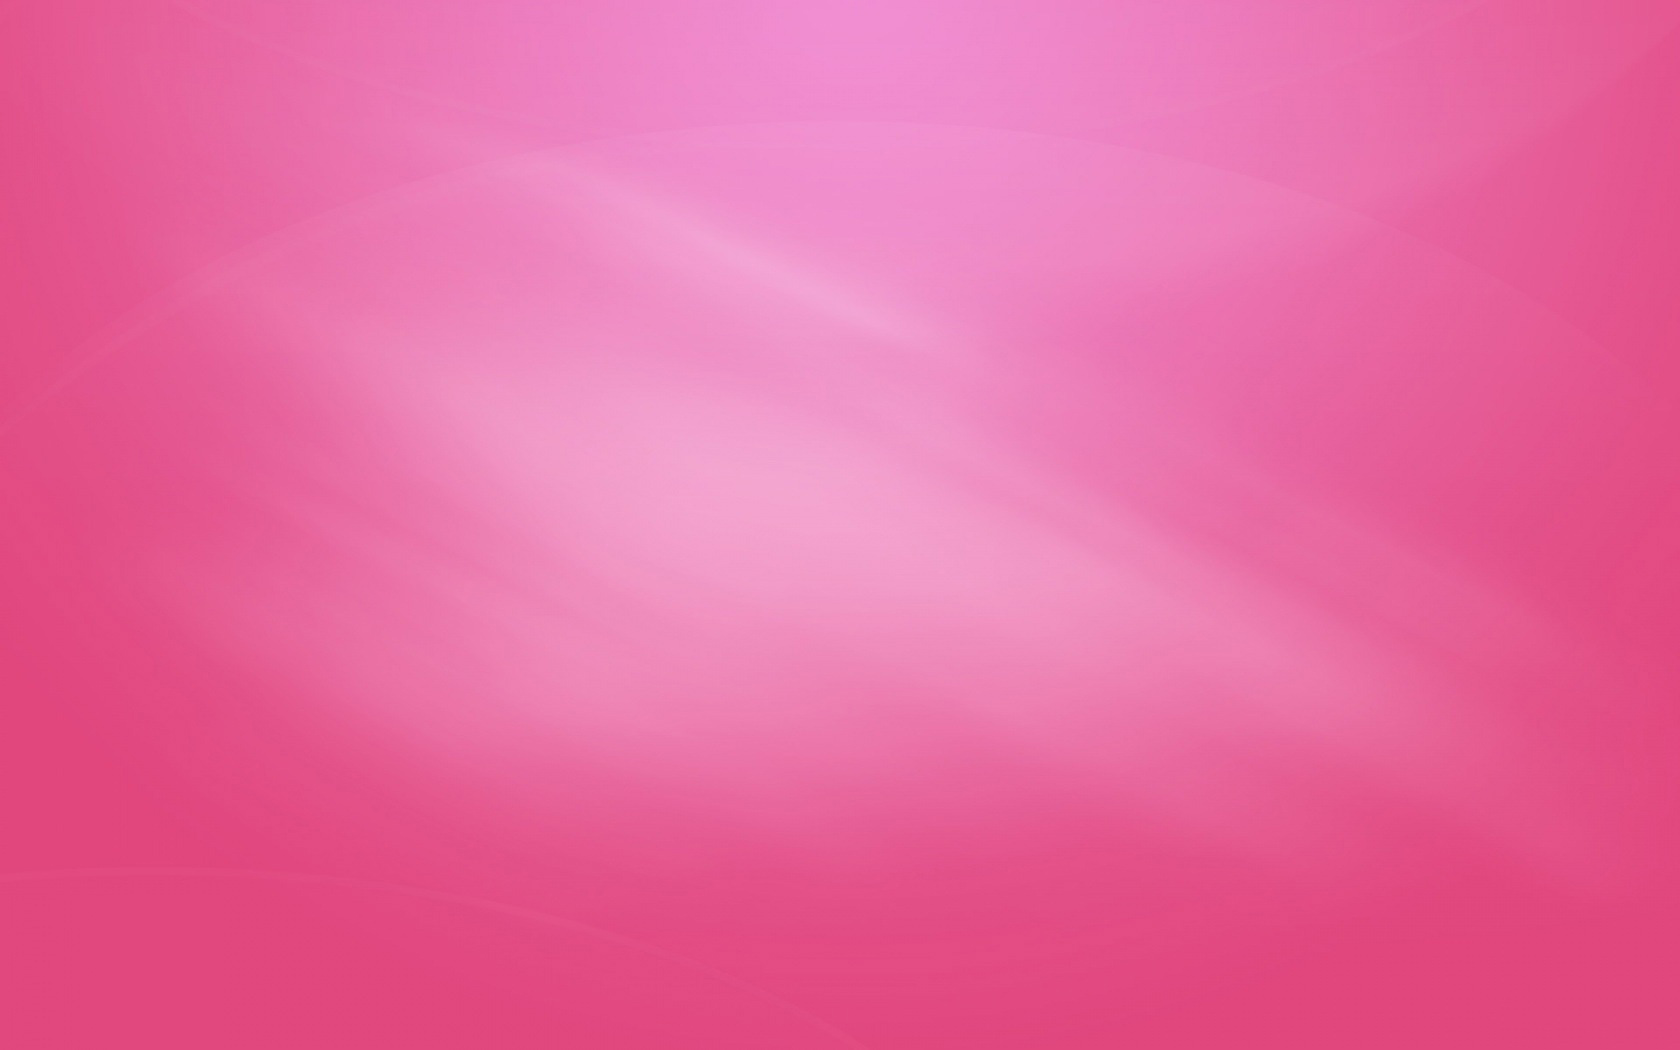 pink background images 1680x1050